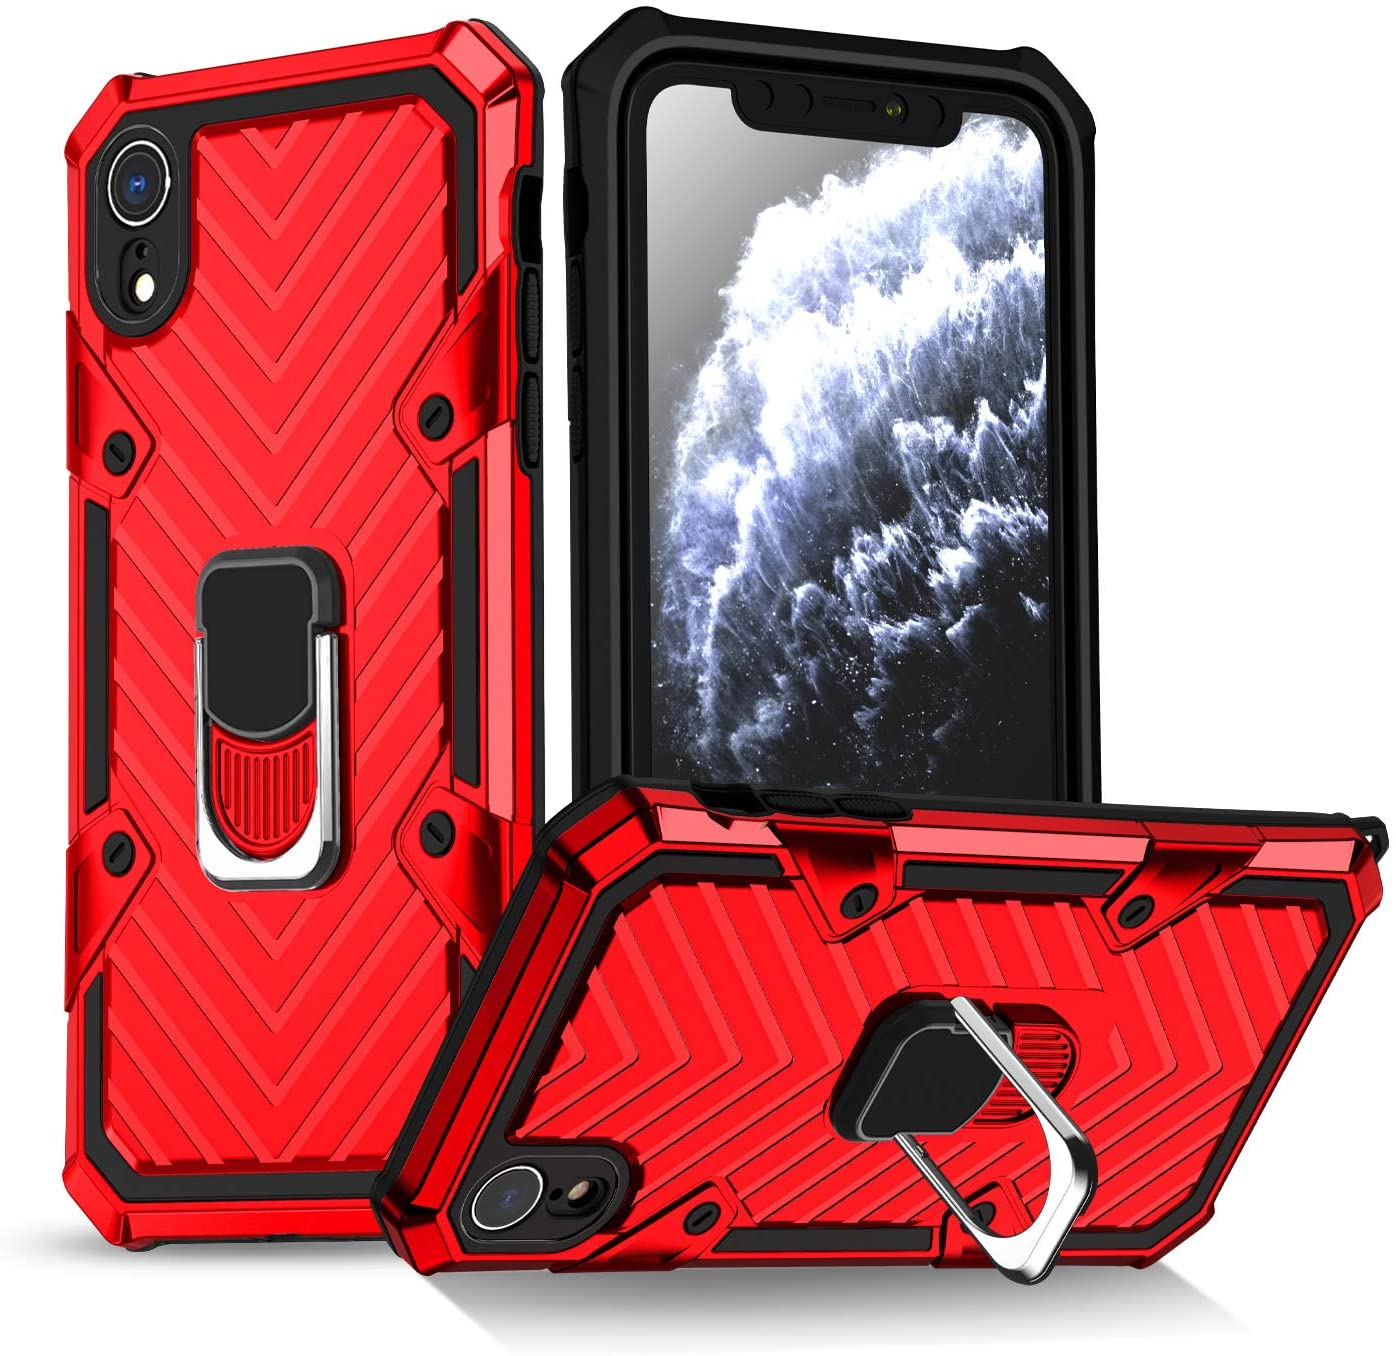 rejazz iPhone XR Case | Kickstand | [ Military Grade ] 15ft. SGS Drop Tested Protective Case | Compatible for Apple iPhone XR 6.1 Inch-Red (iPhone XR)